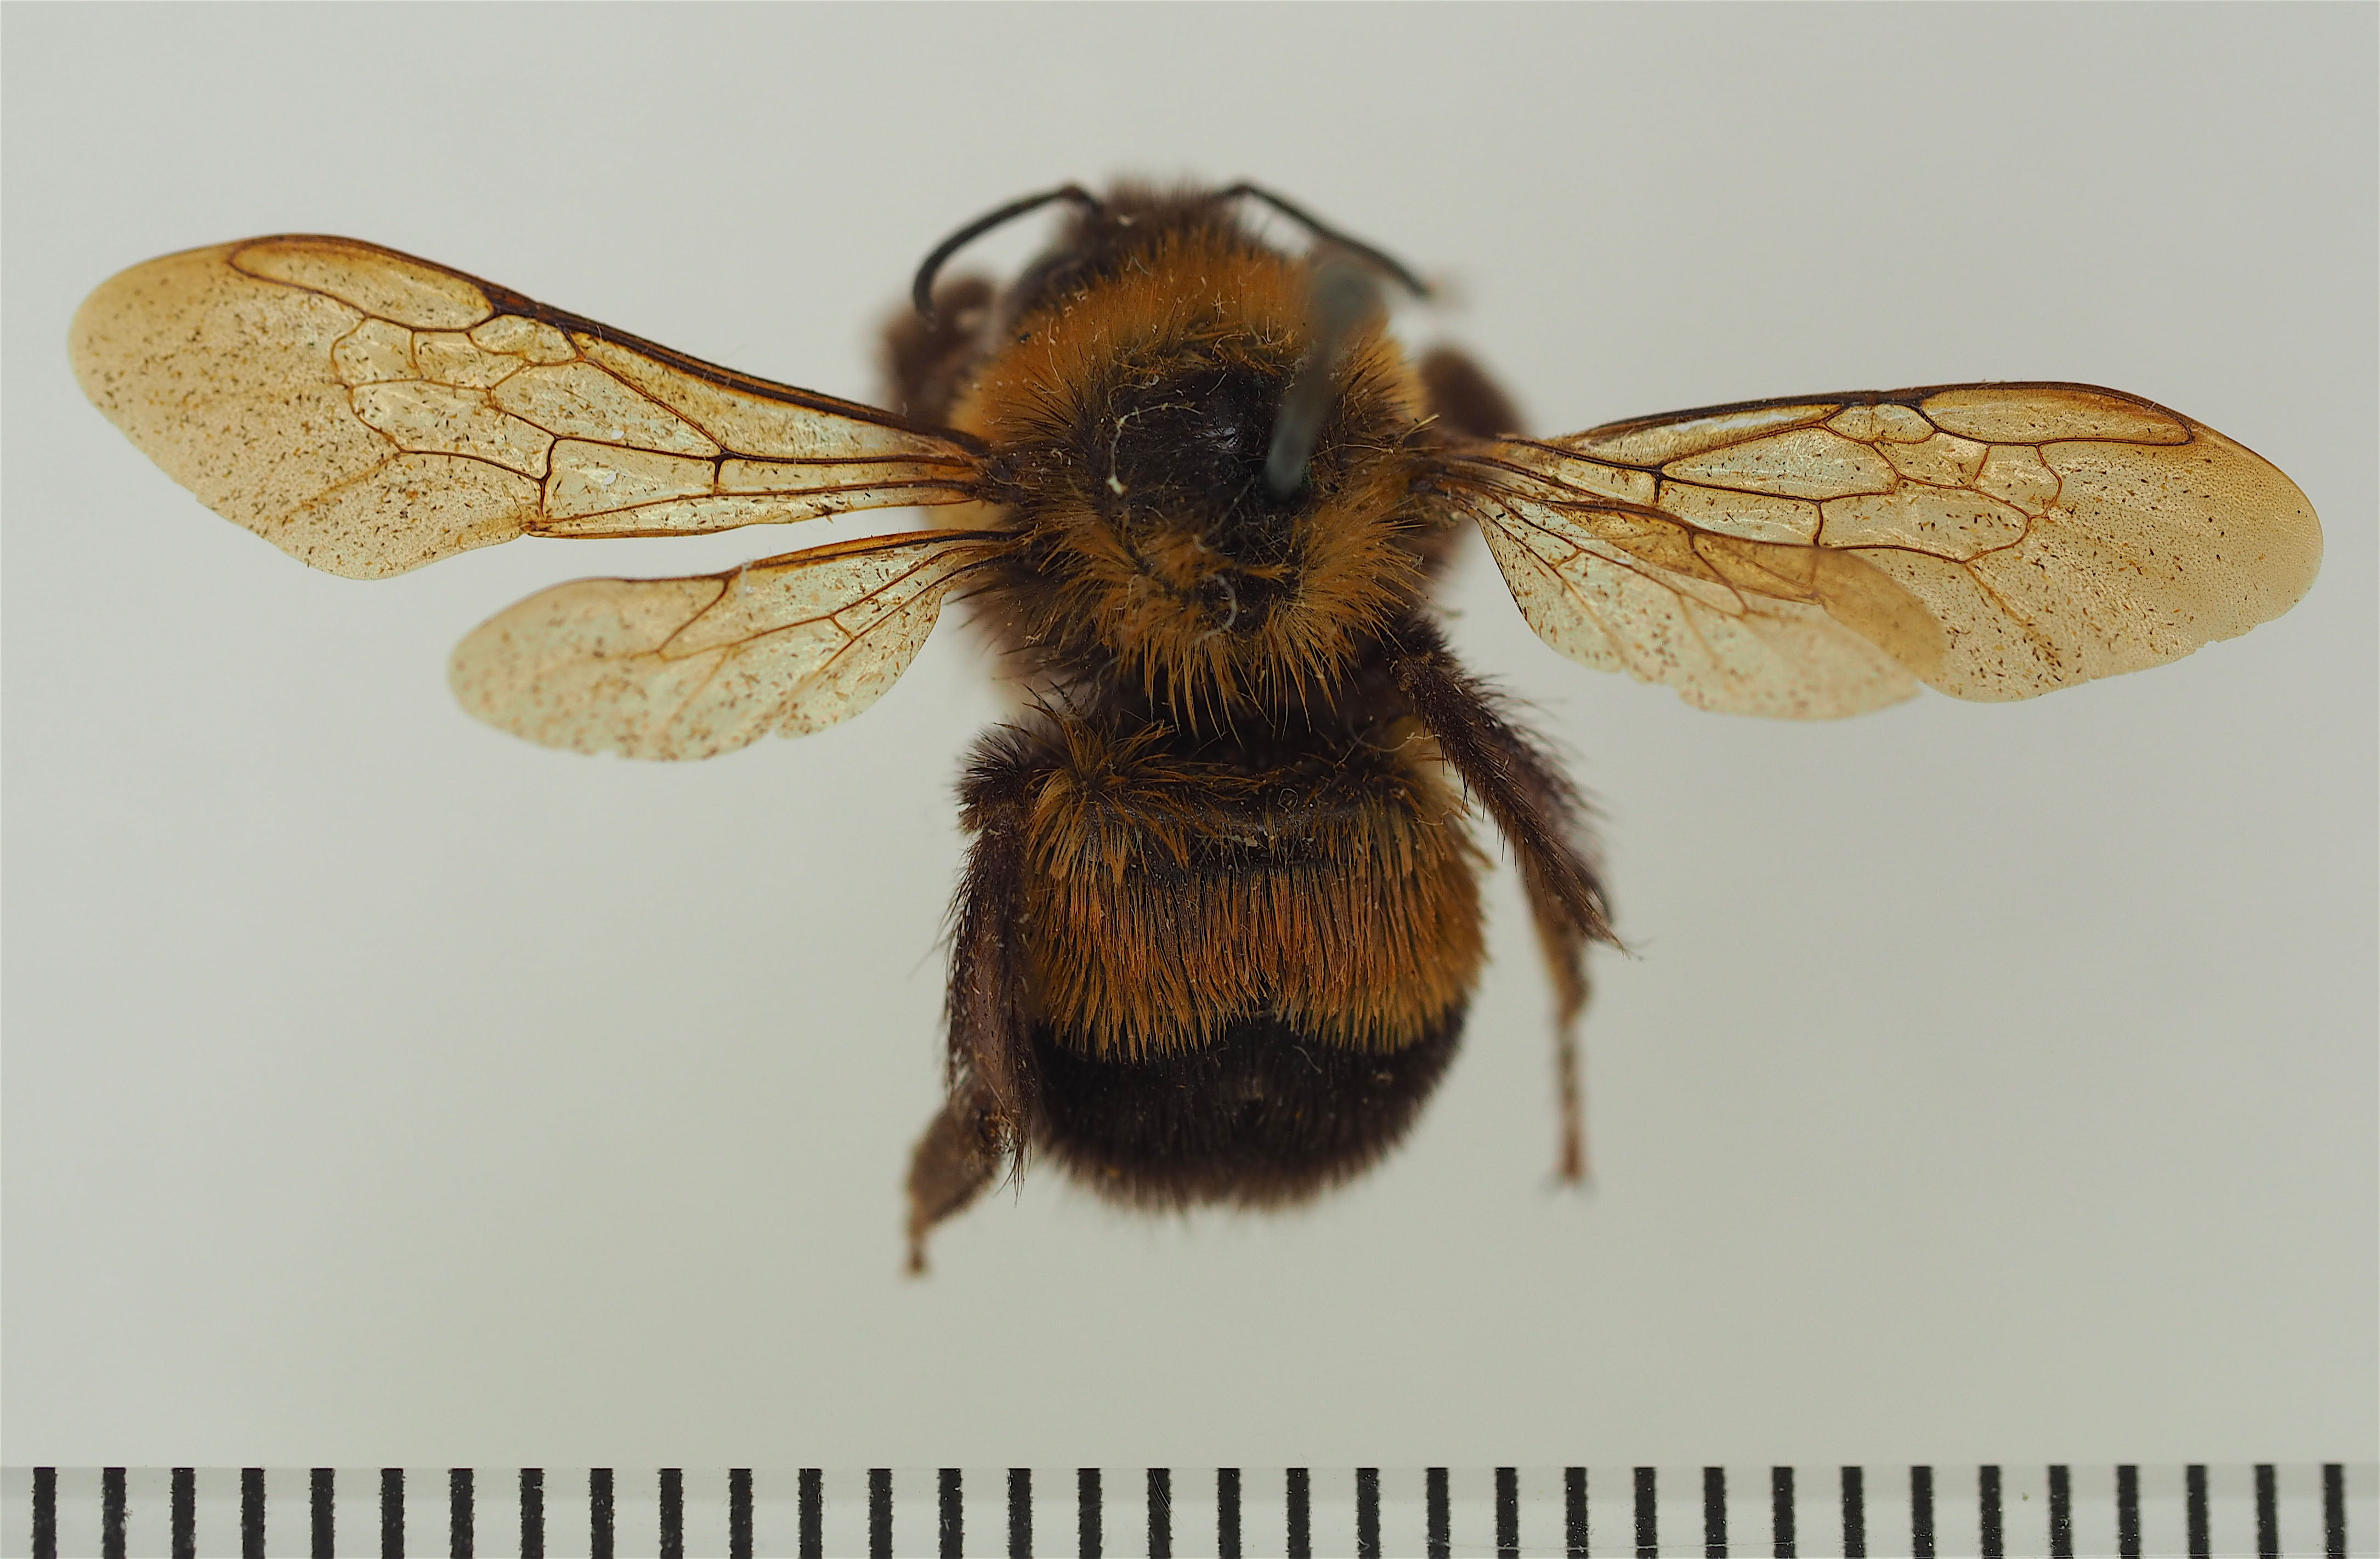 Type specimen of the rusty patched bumble bee. The scale bar at the bottom is in millimeters. Photo by J.D. Weintraub / ANSP Entomology